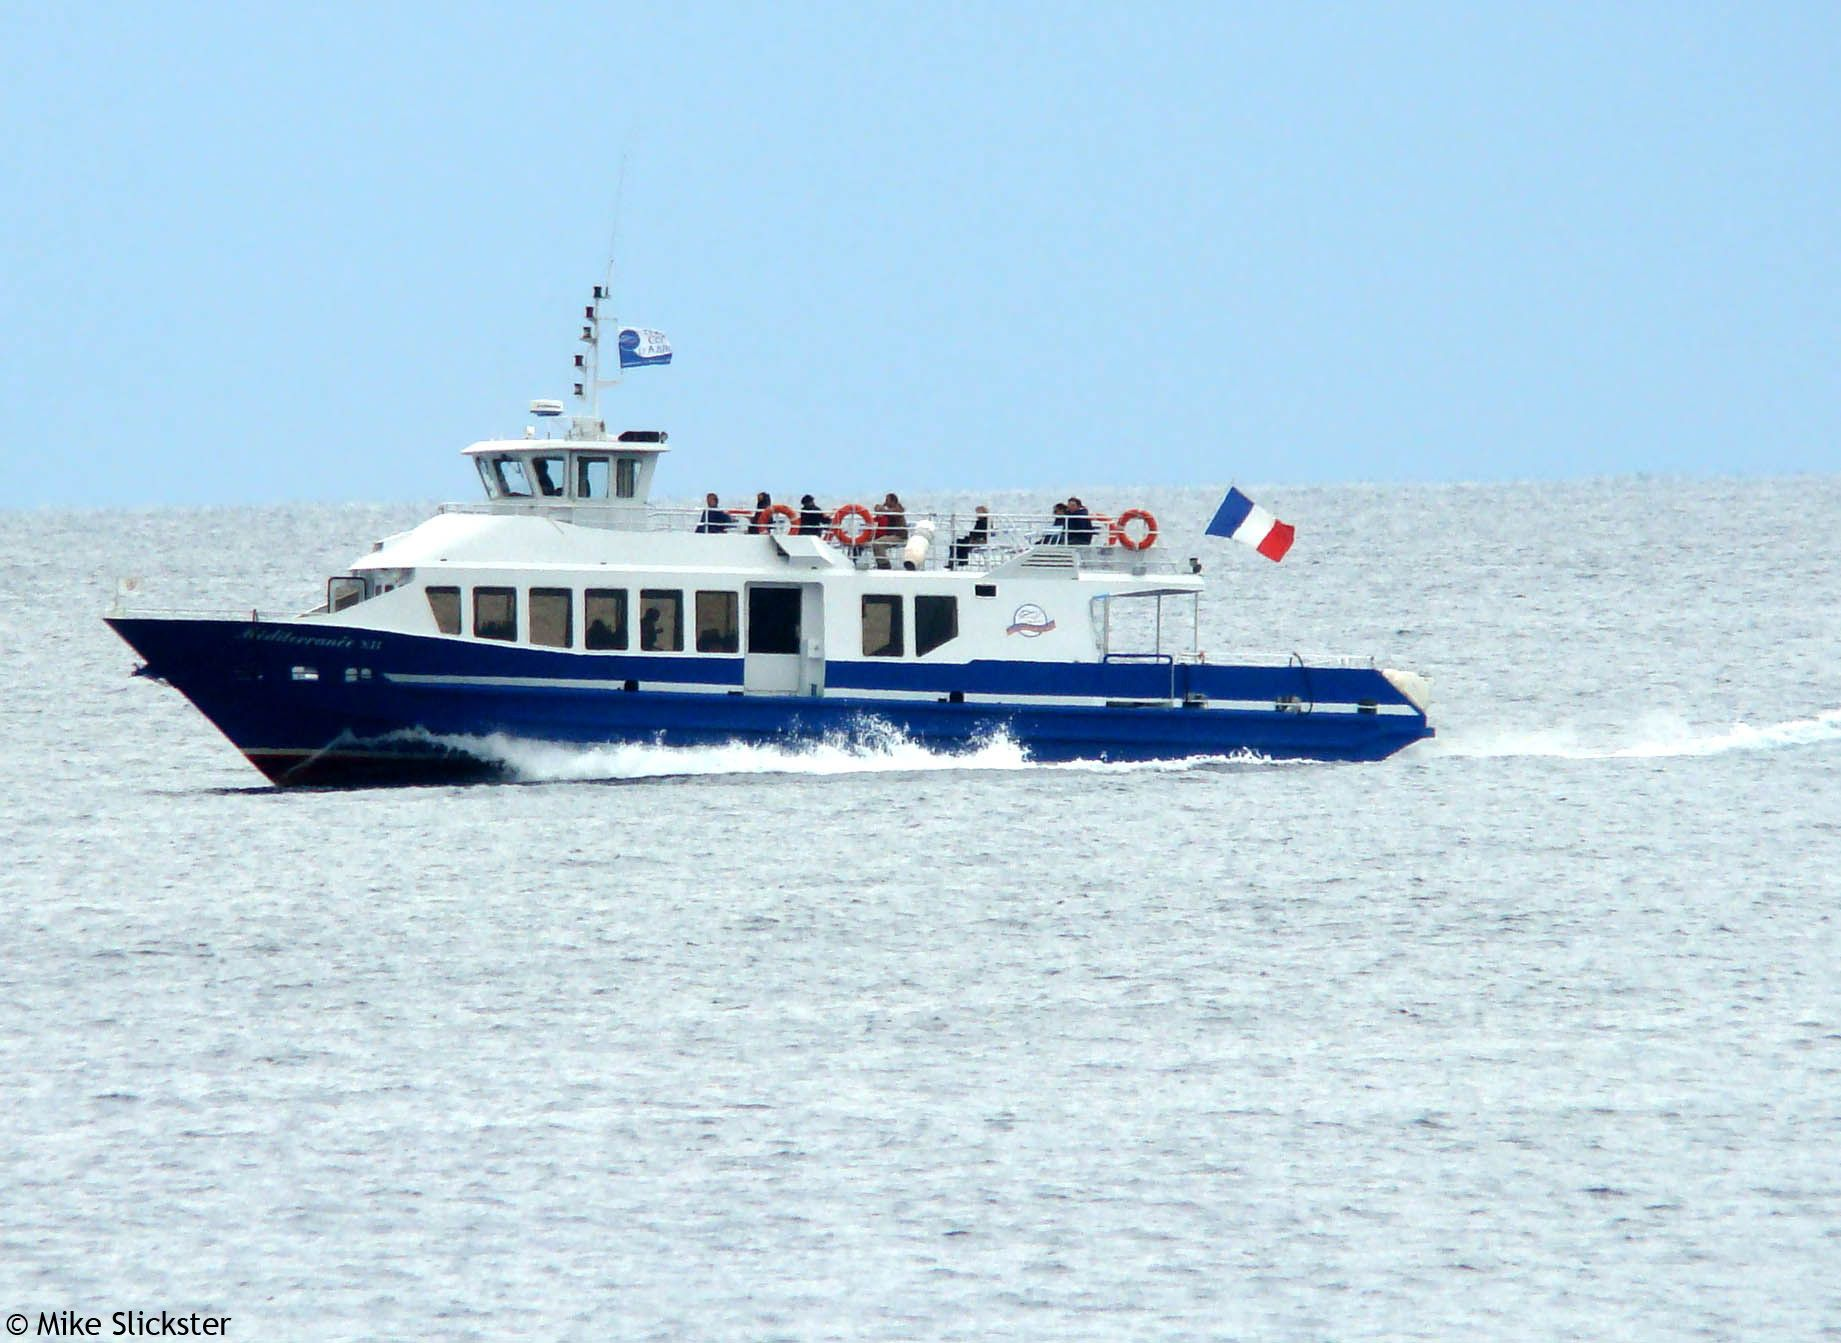 Party Boat, Cruising on the Baie des Anges in Nice, France.